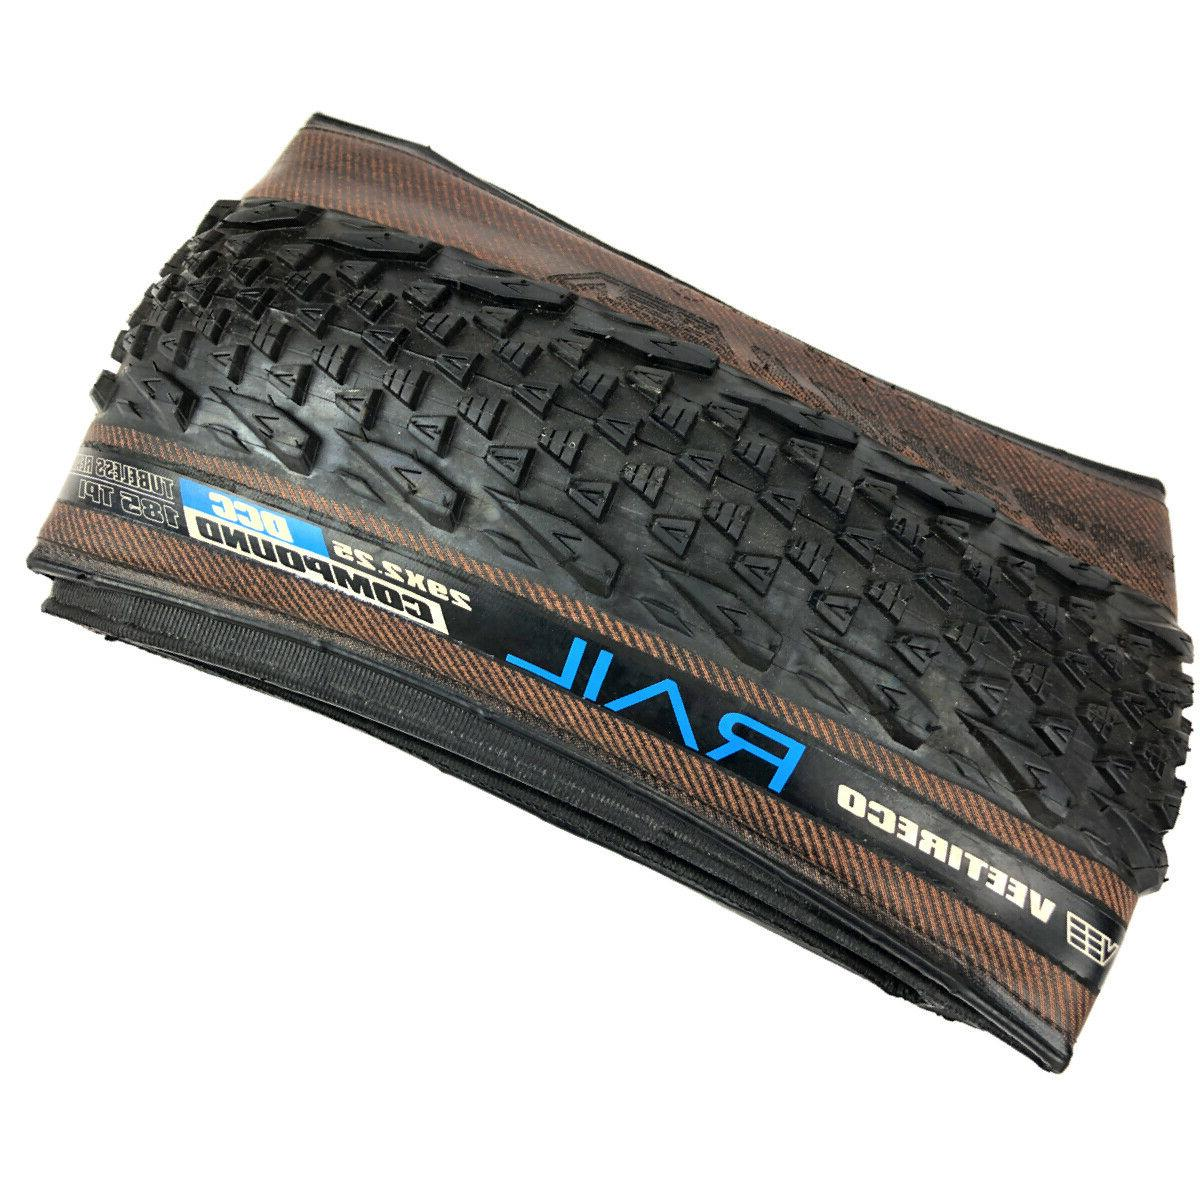 2 Tire 29x2.25 Bike Tires Bead Dual Compound Synthesis